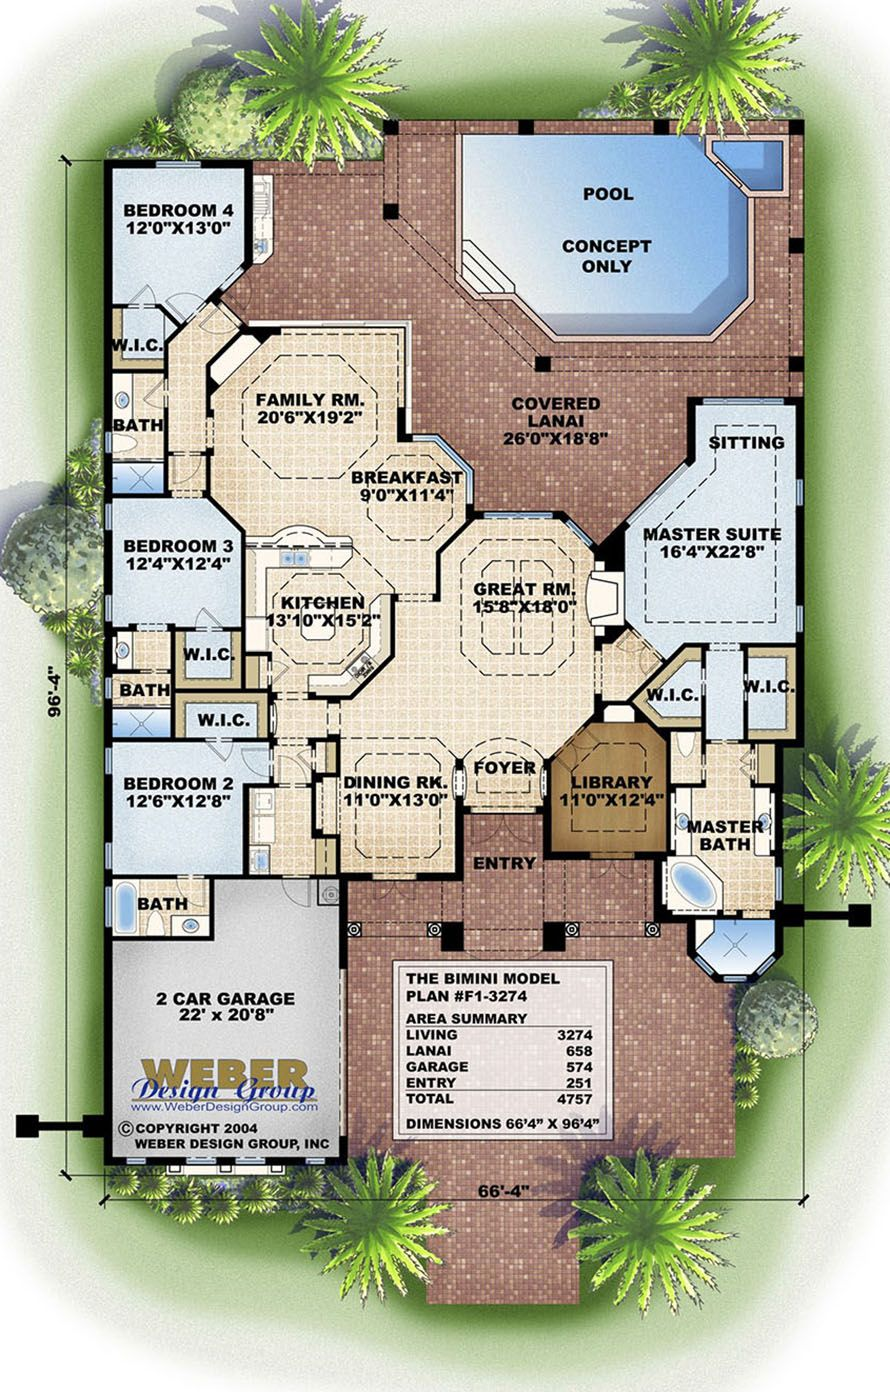 Mediterranean House Plan Mediterranean Golf Course Home Floor Plan Mediterranean House Plans House Floor Plans Mediterranean House Plan